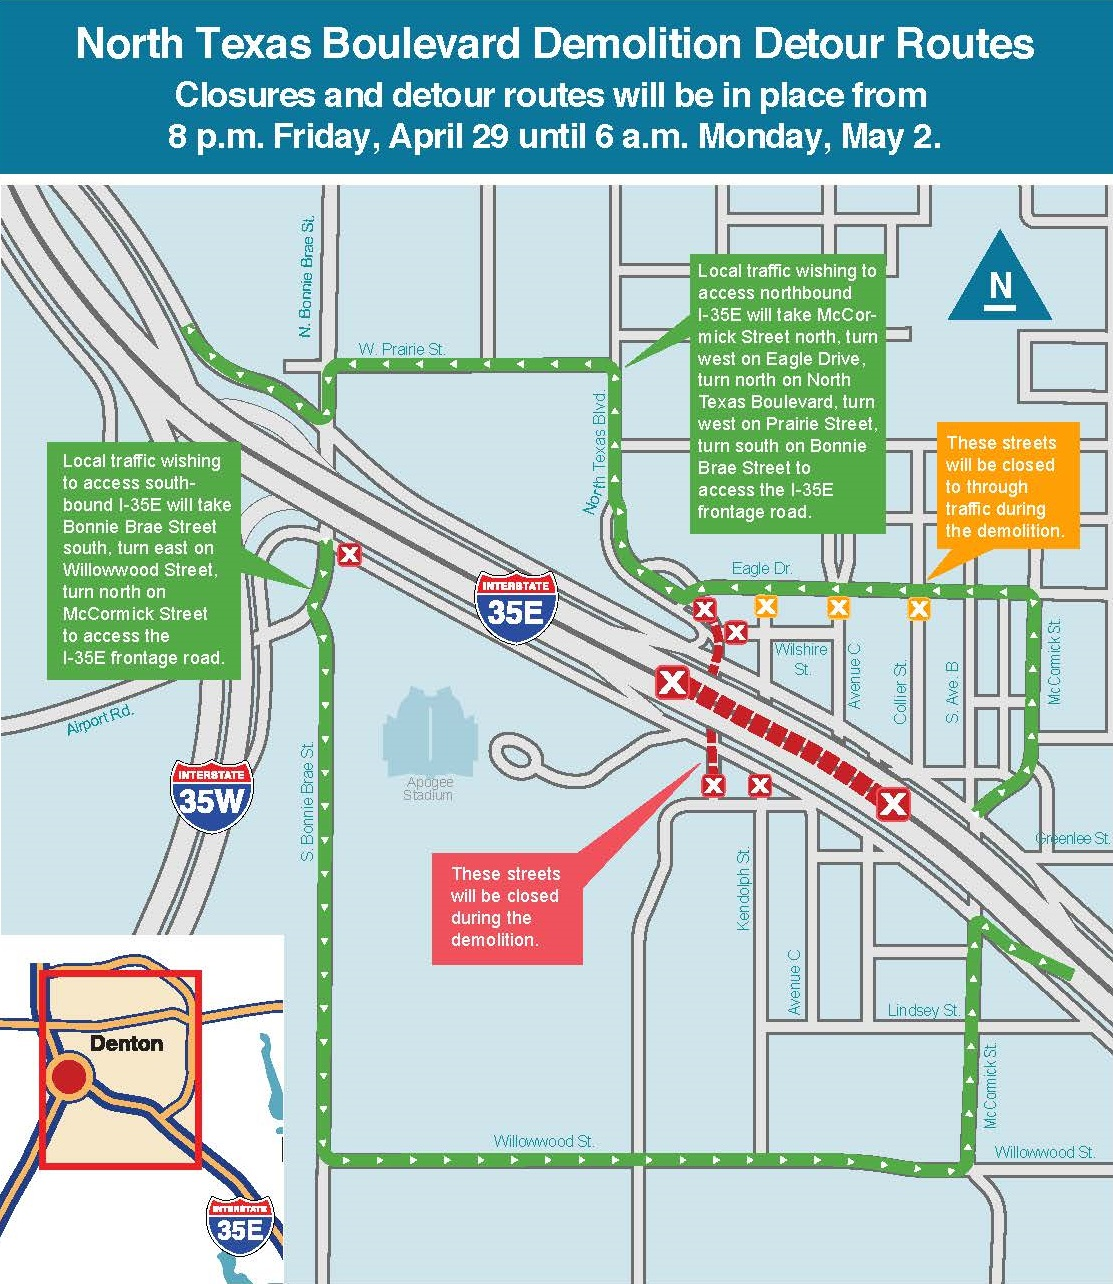 I-35E traffic alternate routes for North Texas Blvd map